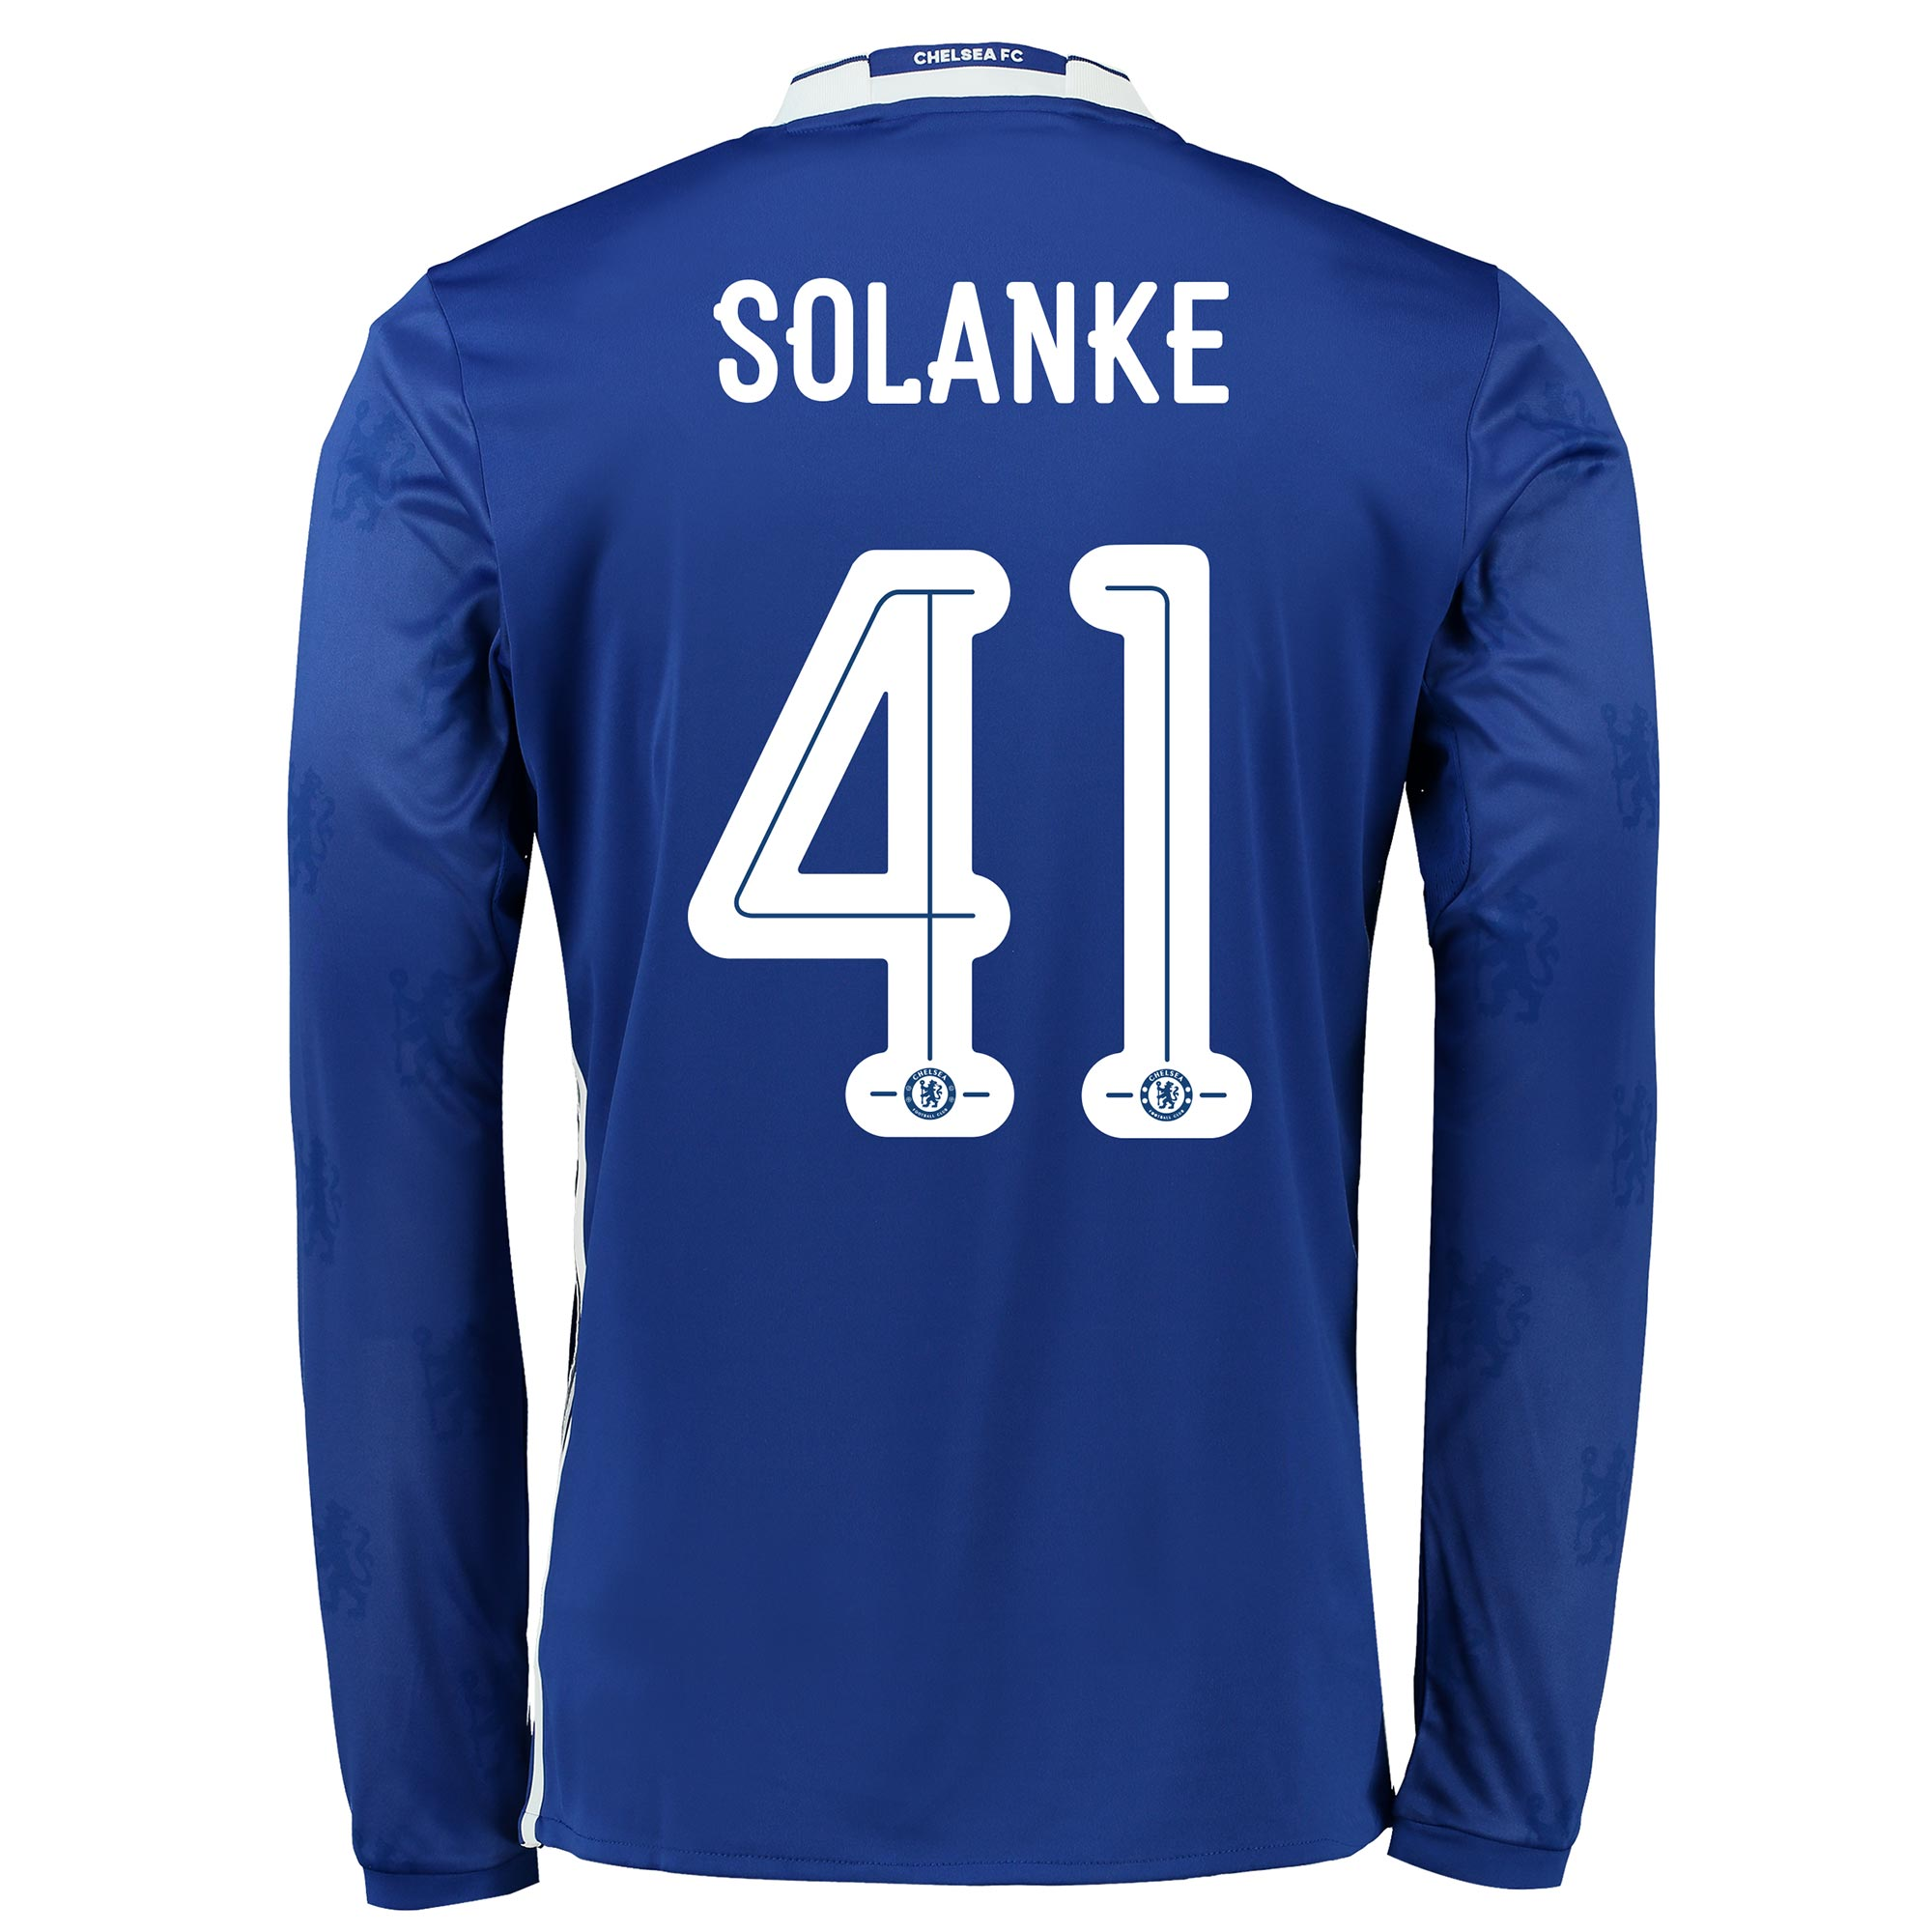 Chelsea Linear Home Shirt 2016-17 - Kids - Long Sleeve with Solanke 41